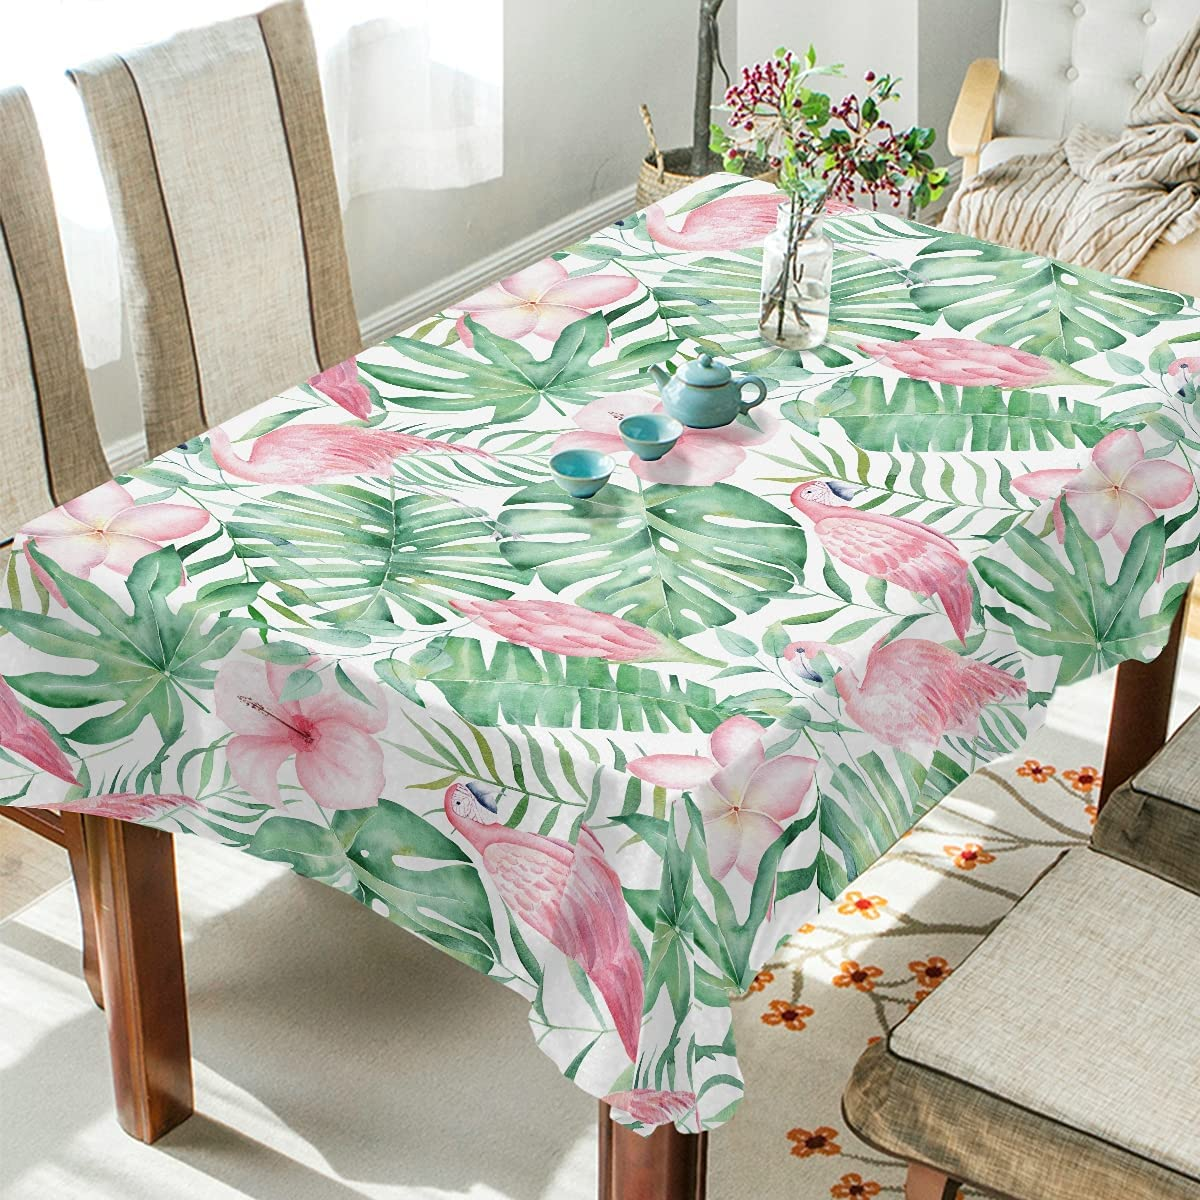 Rectangle 流行 Tablecloth 60 半額 x 120 Inch Green Lea Tropical Palm Plant